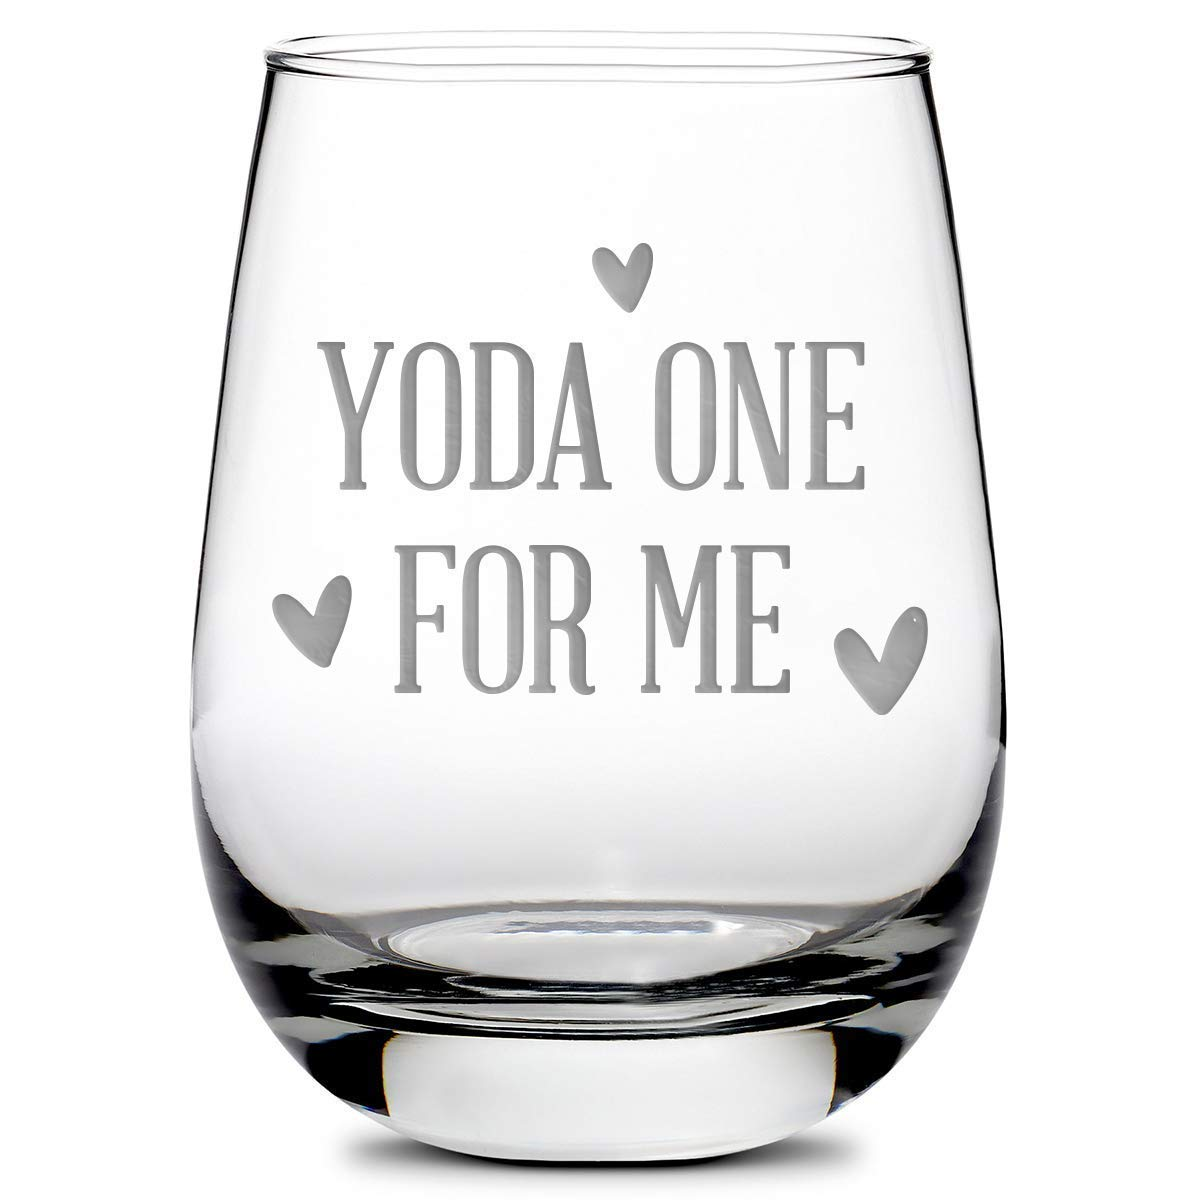 Integrity Bottles Premium Stemless New mail order Wine Glass - Fo Baby Yoda sale One